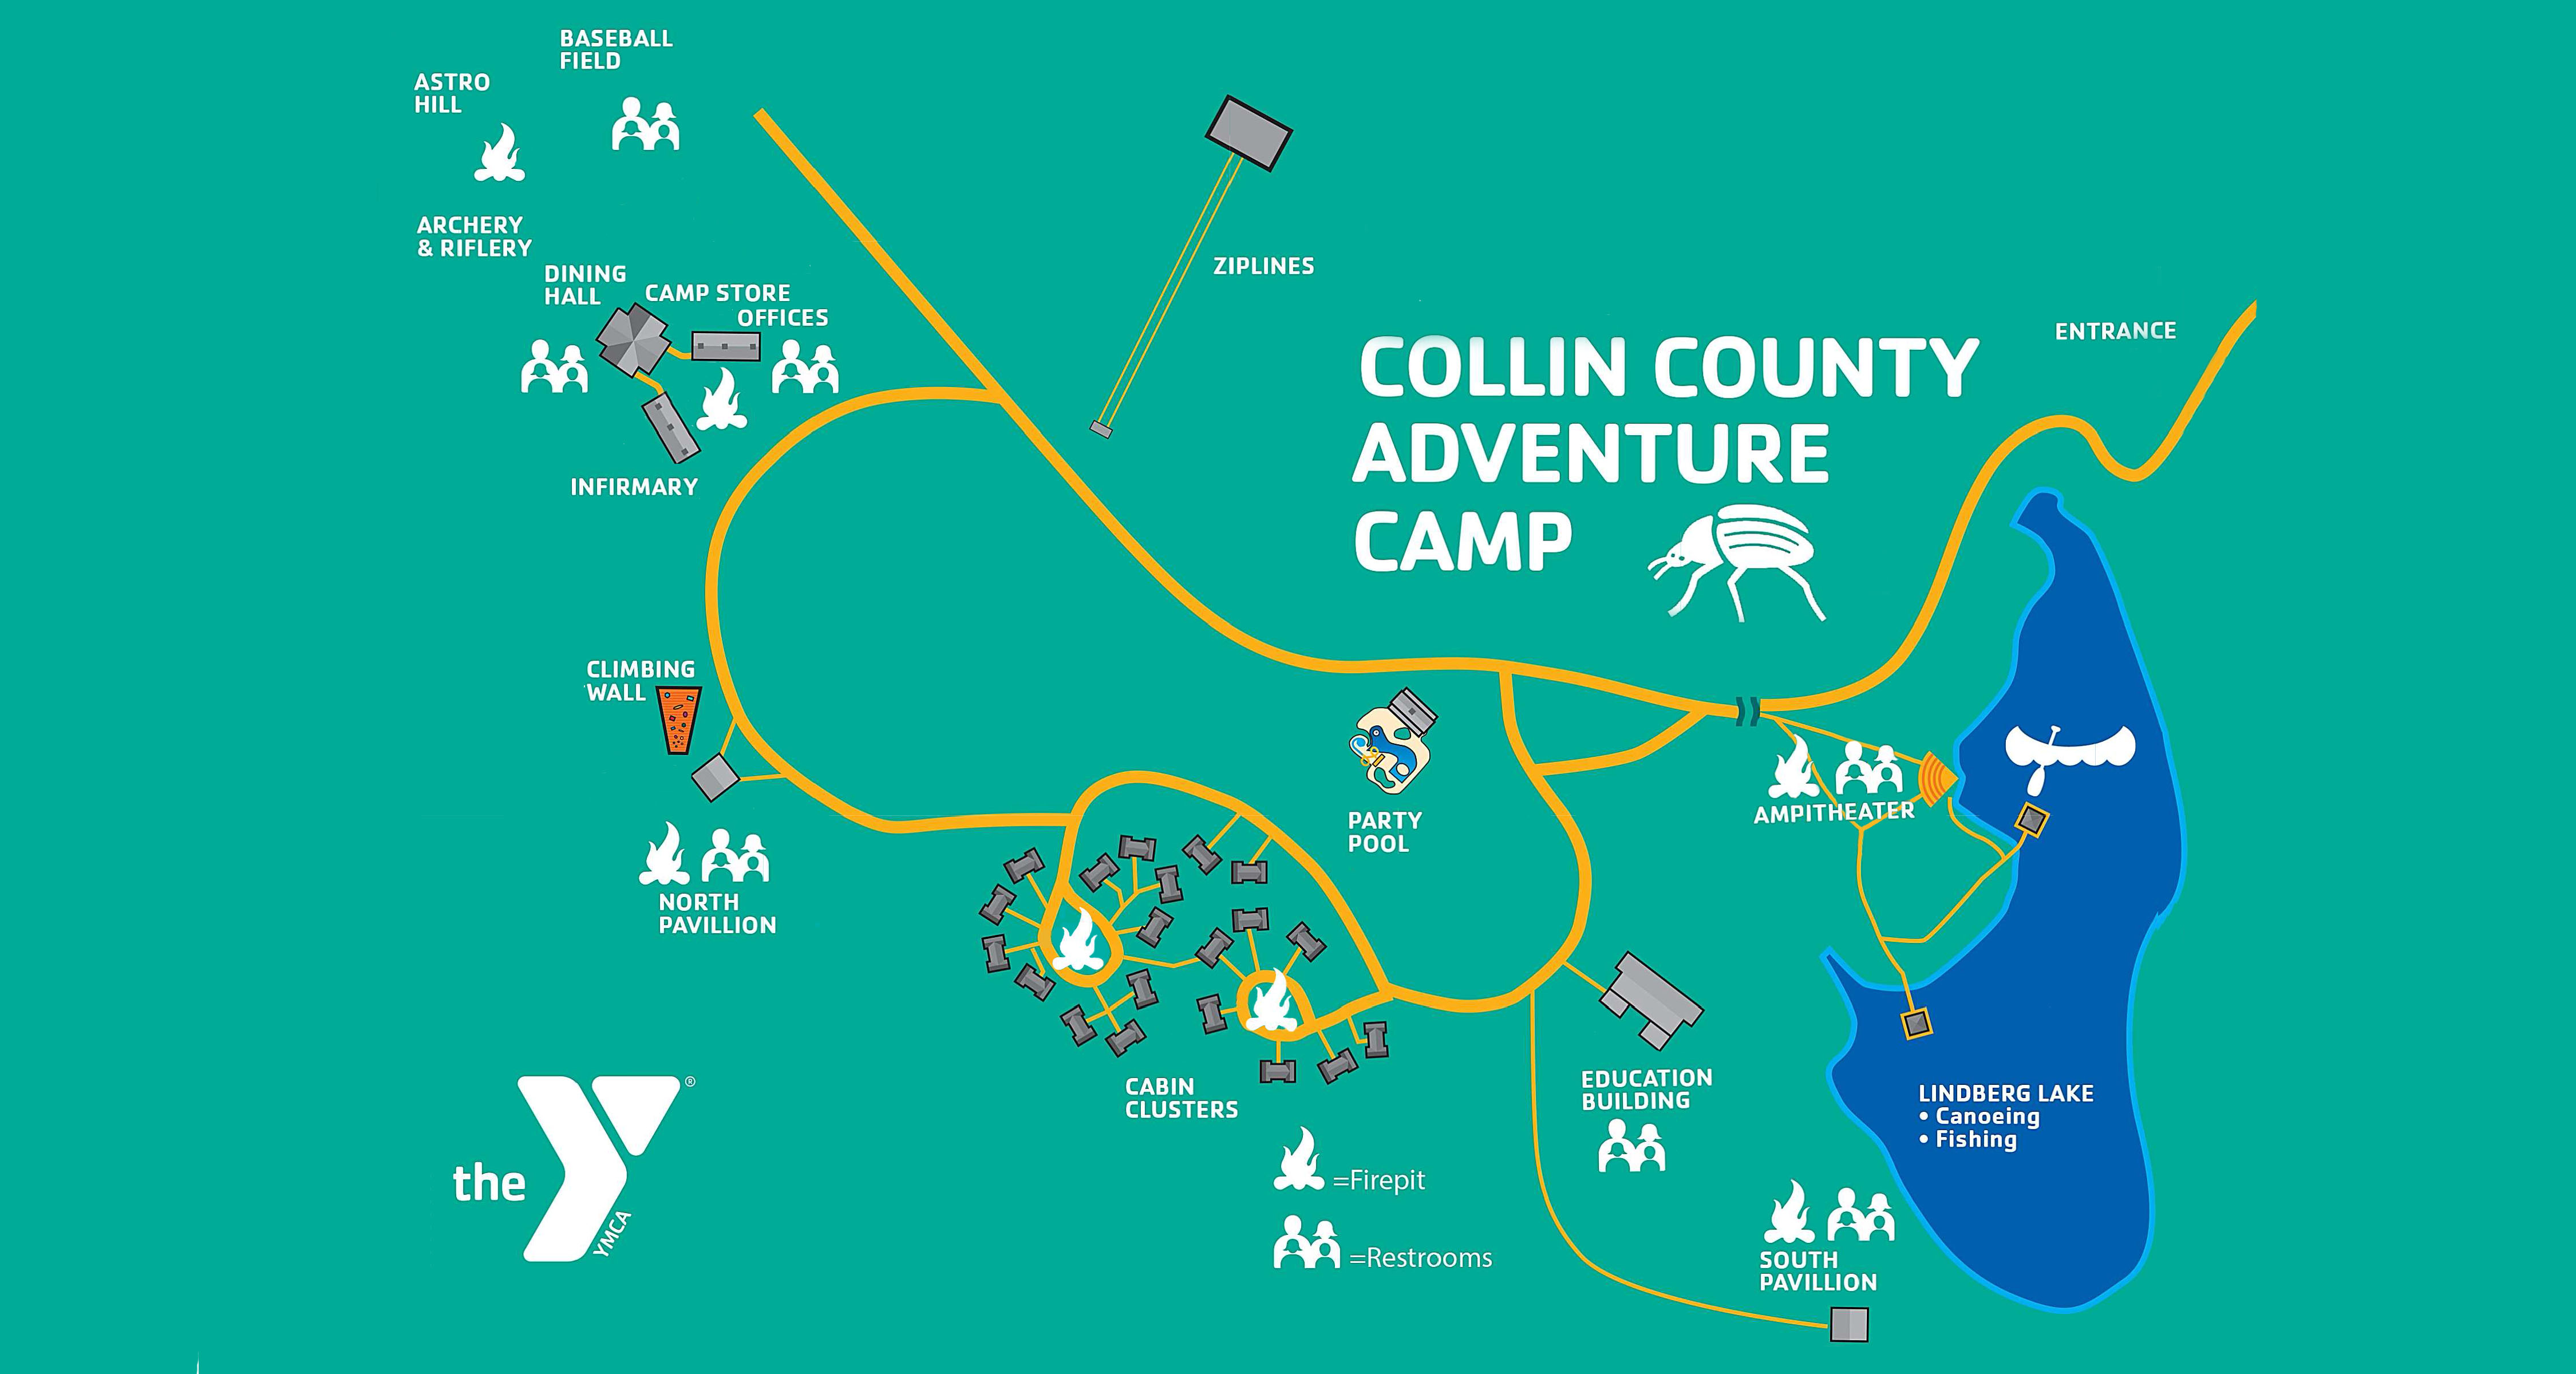 Map of Collin County Adventure Camp